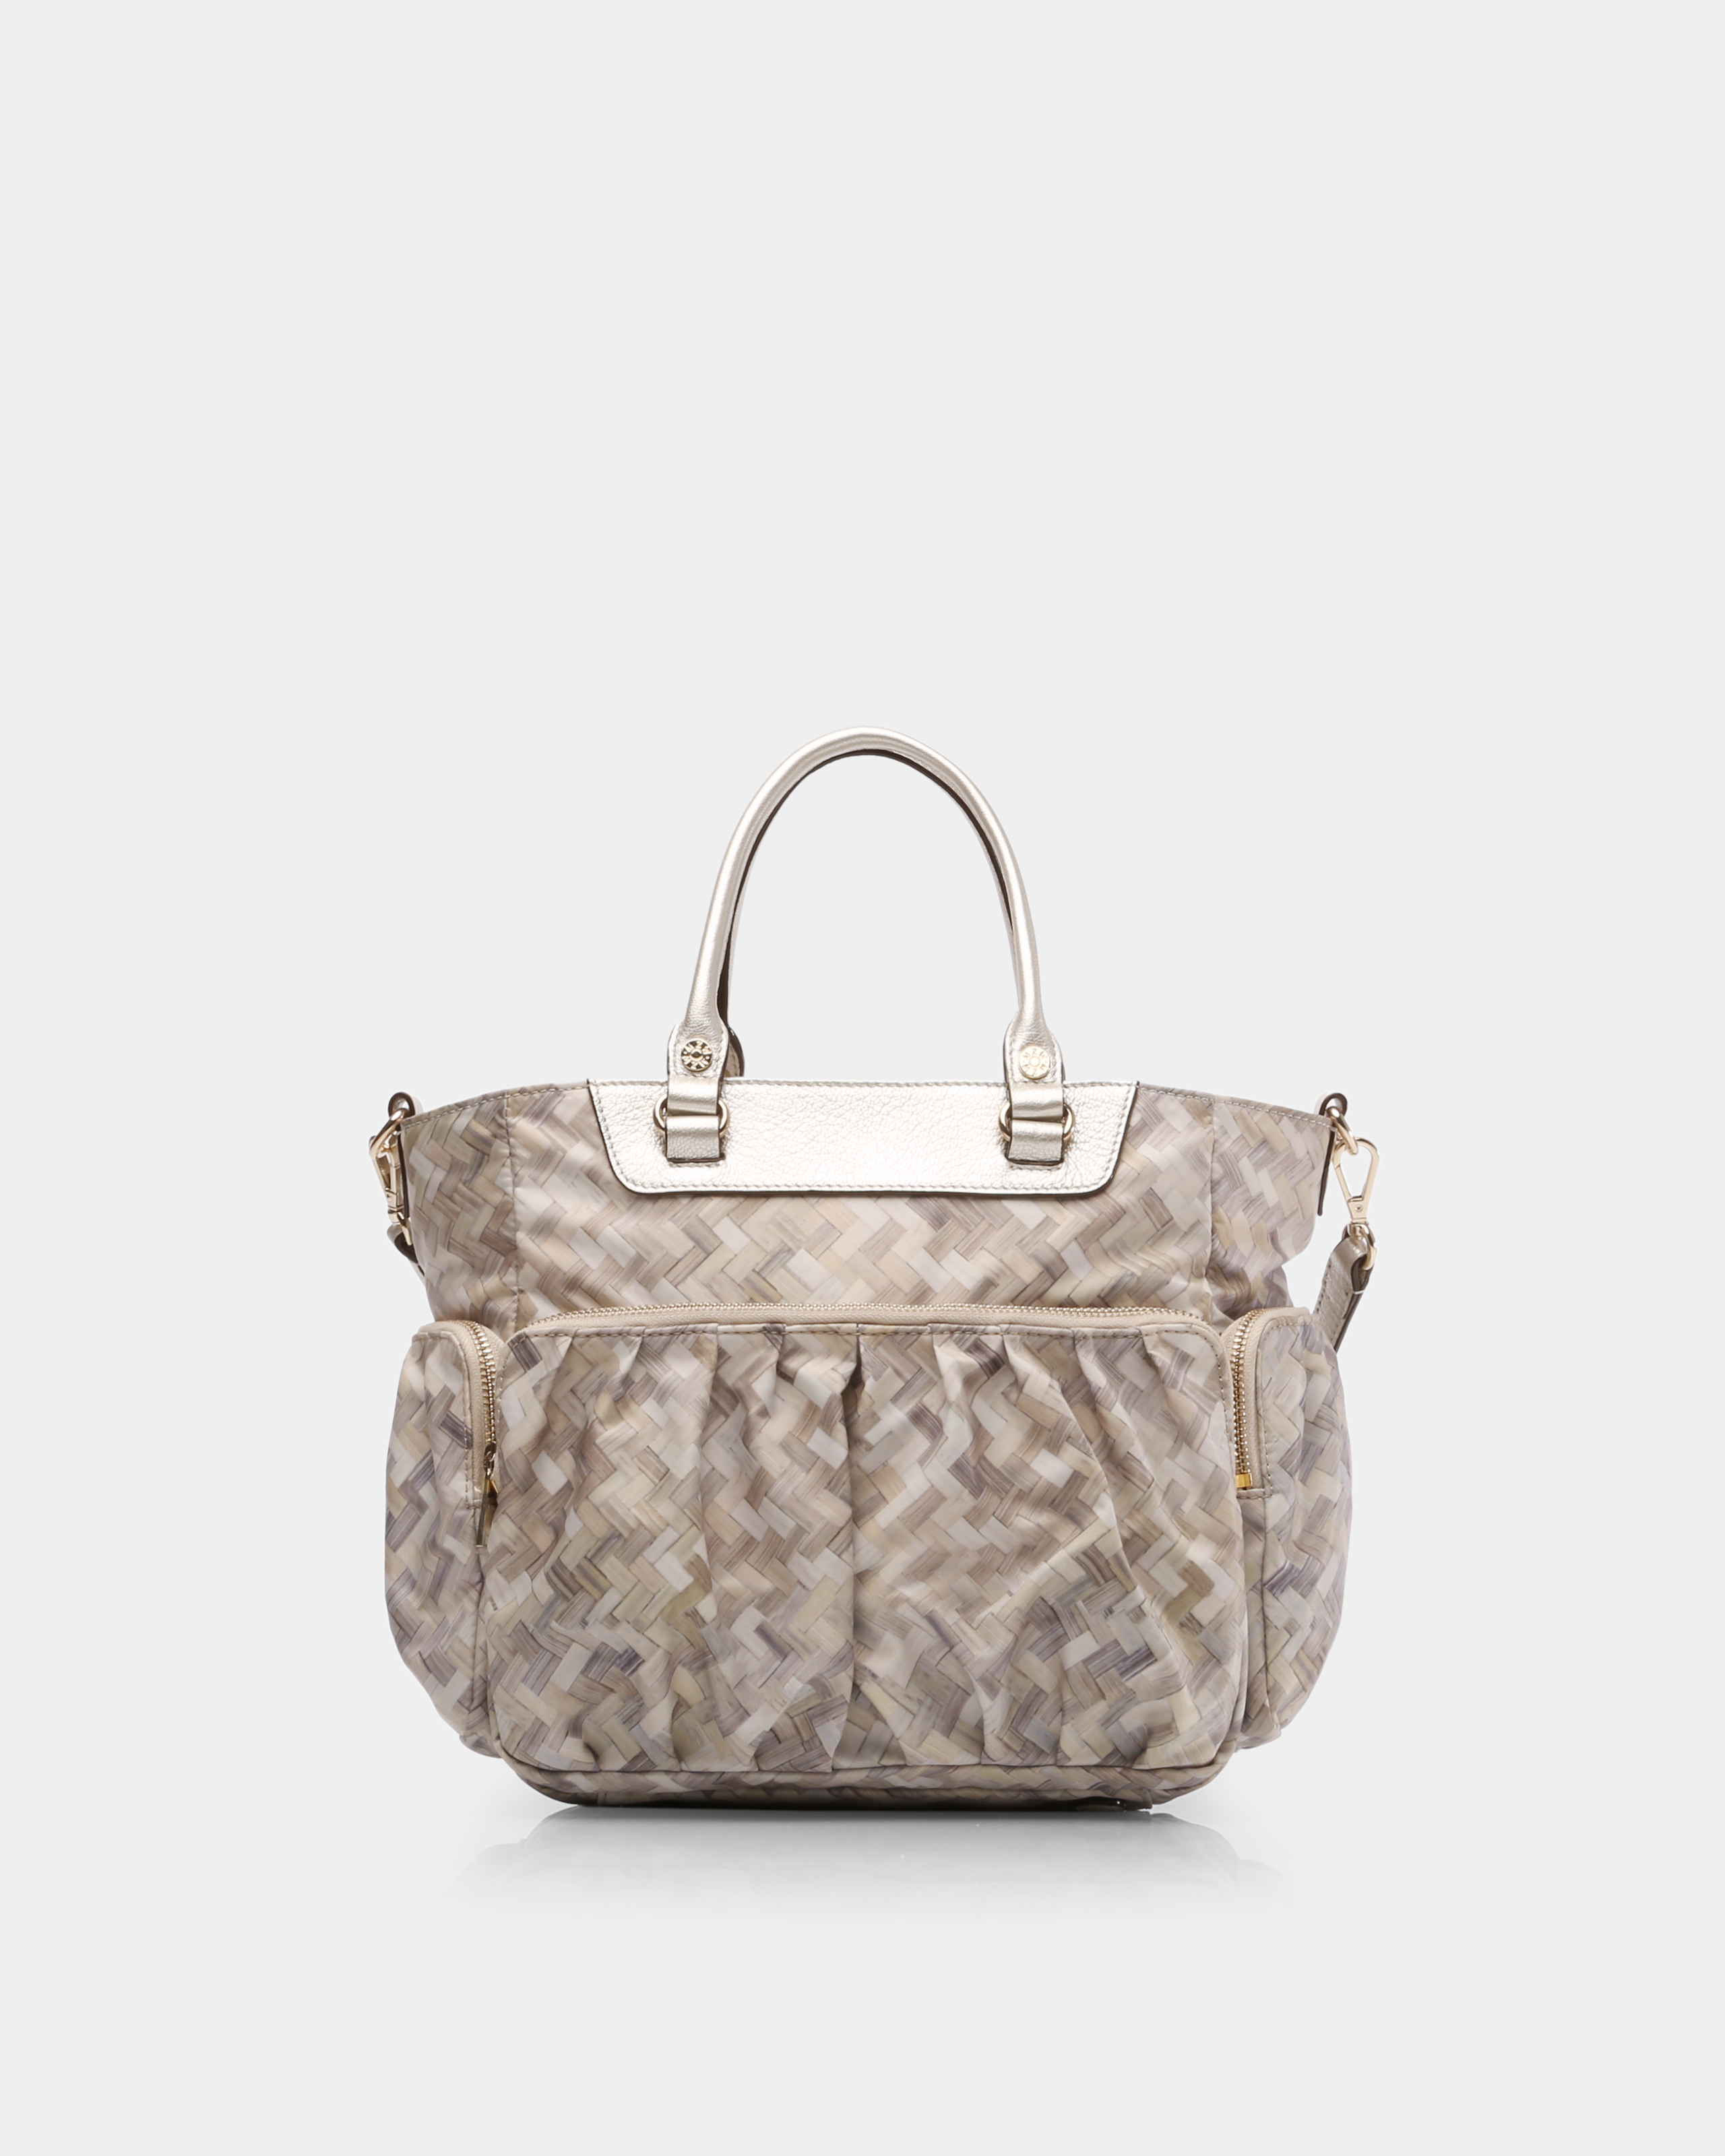 Basket Weave Bedford Small Abbey Tote (5921374) in color Basket Weave